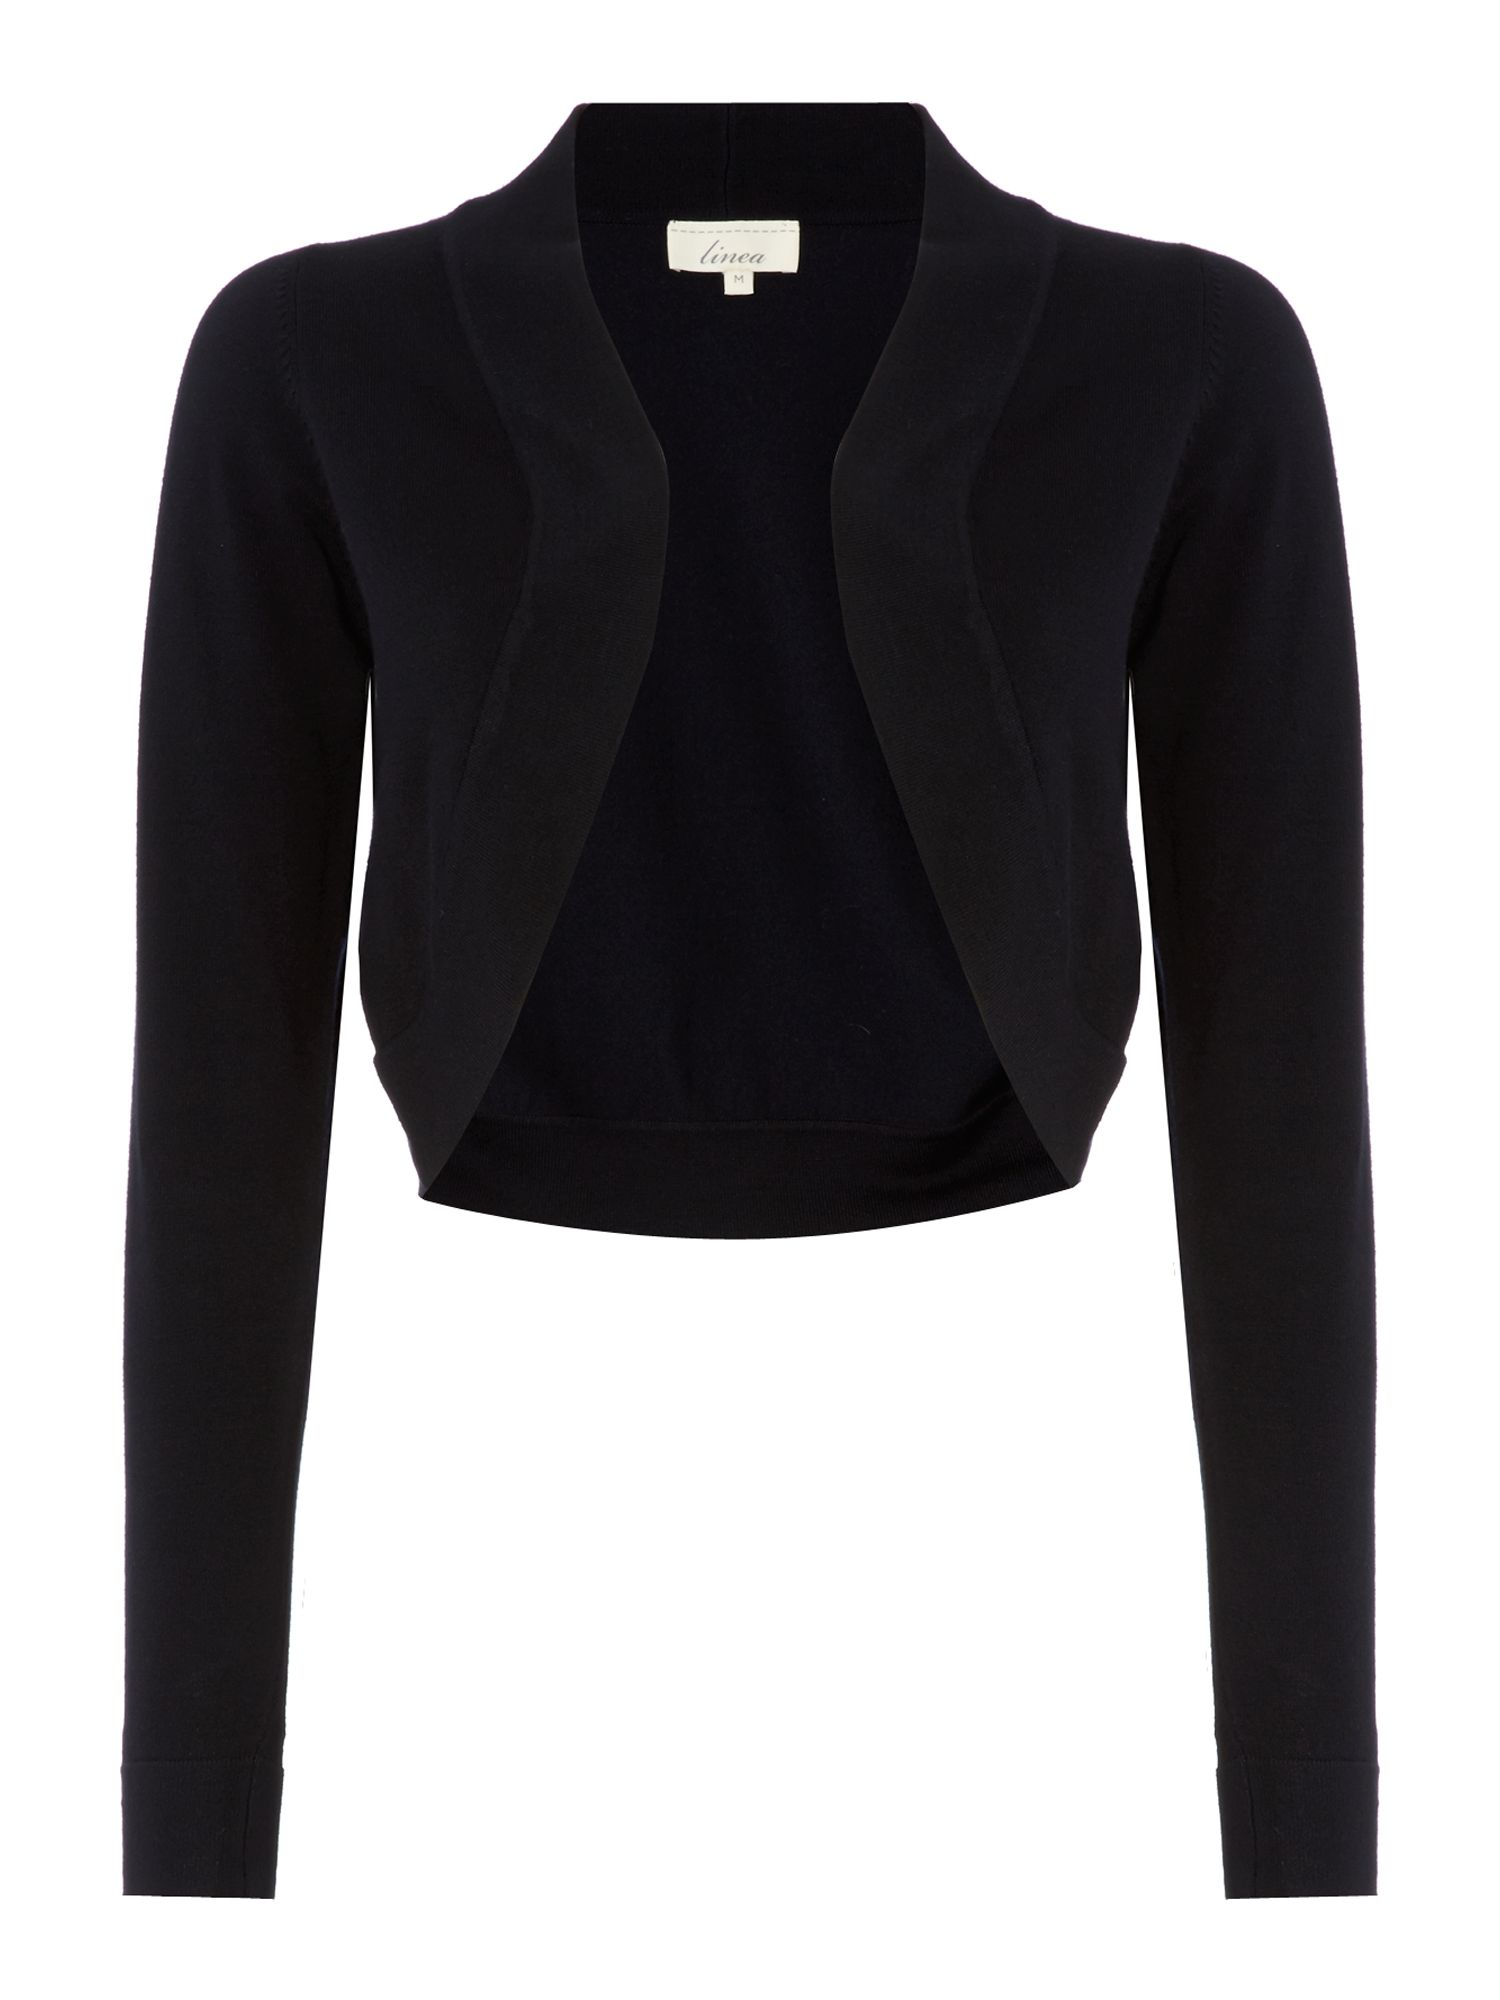 Essential long sleeve shrug